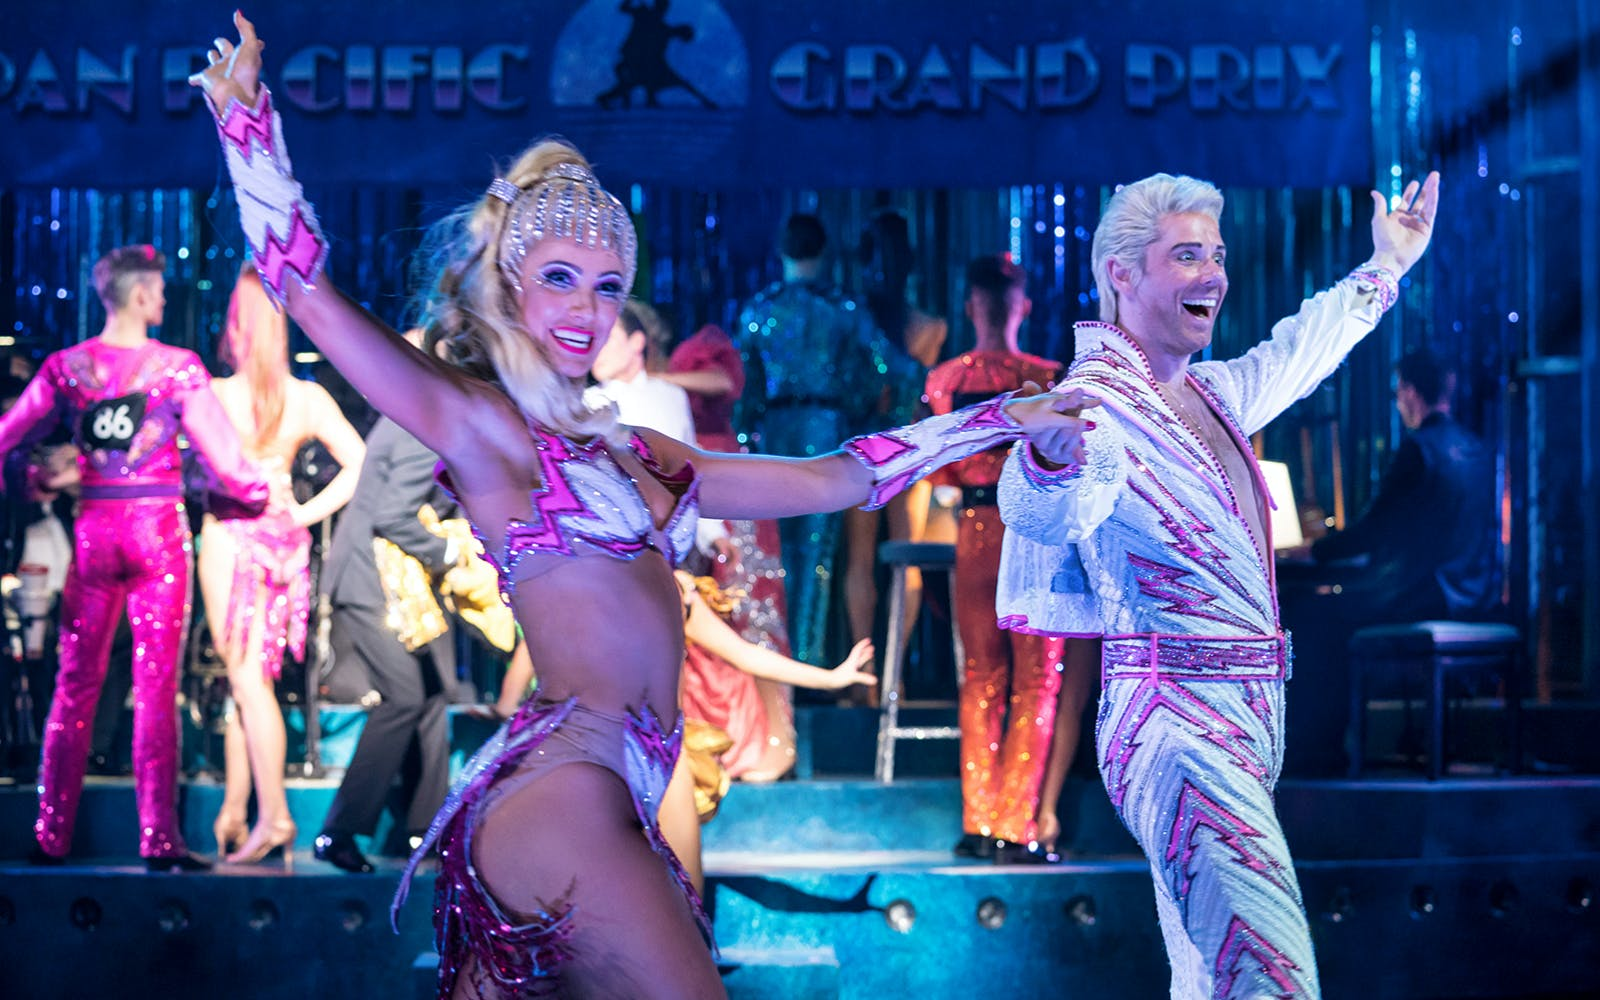 strictly ballroom the musical-3